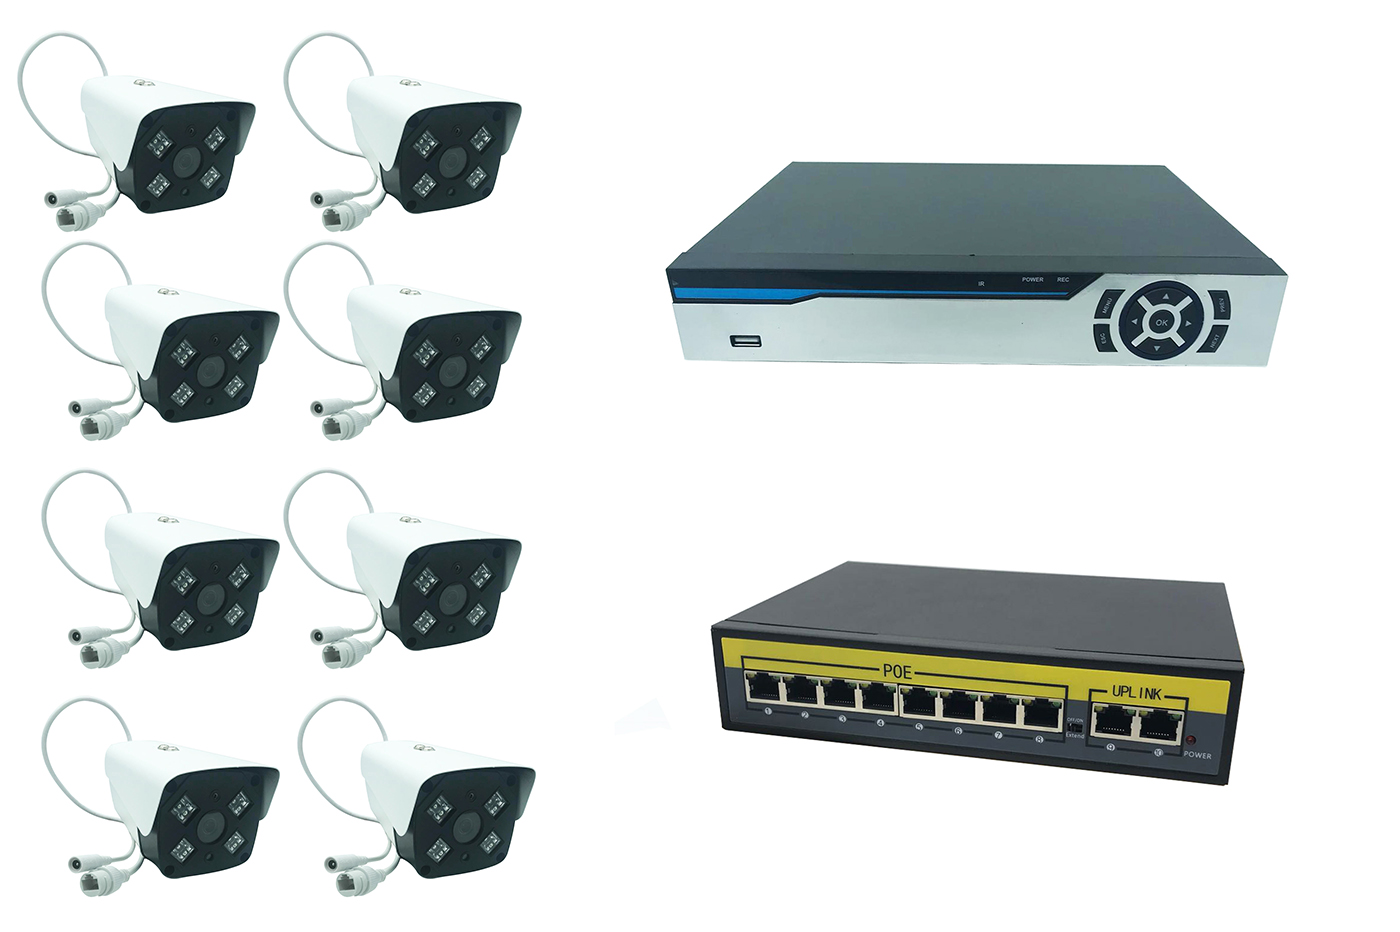 Kit videosorveglianza dvr 8ch nvr ahd 8 telecamere IP led array switch Poe 8port